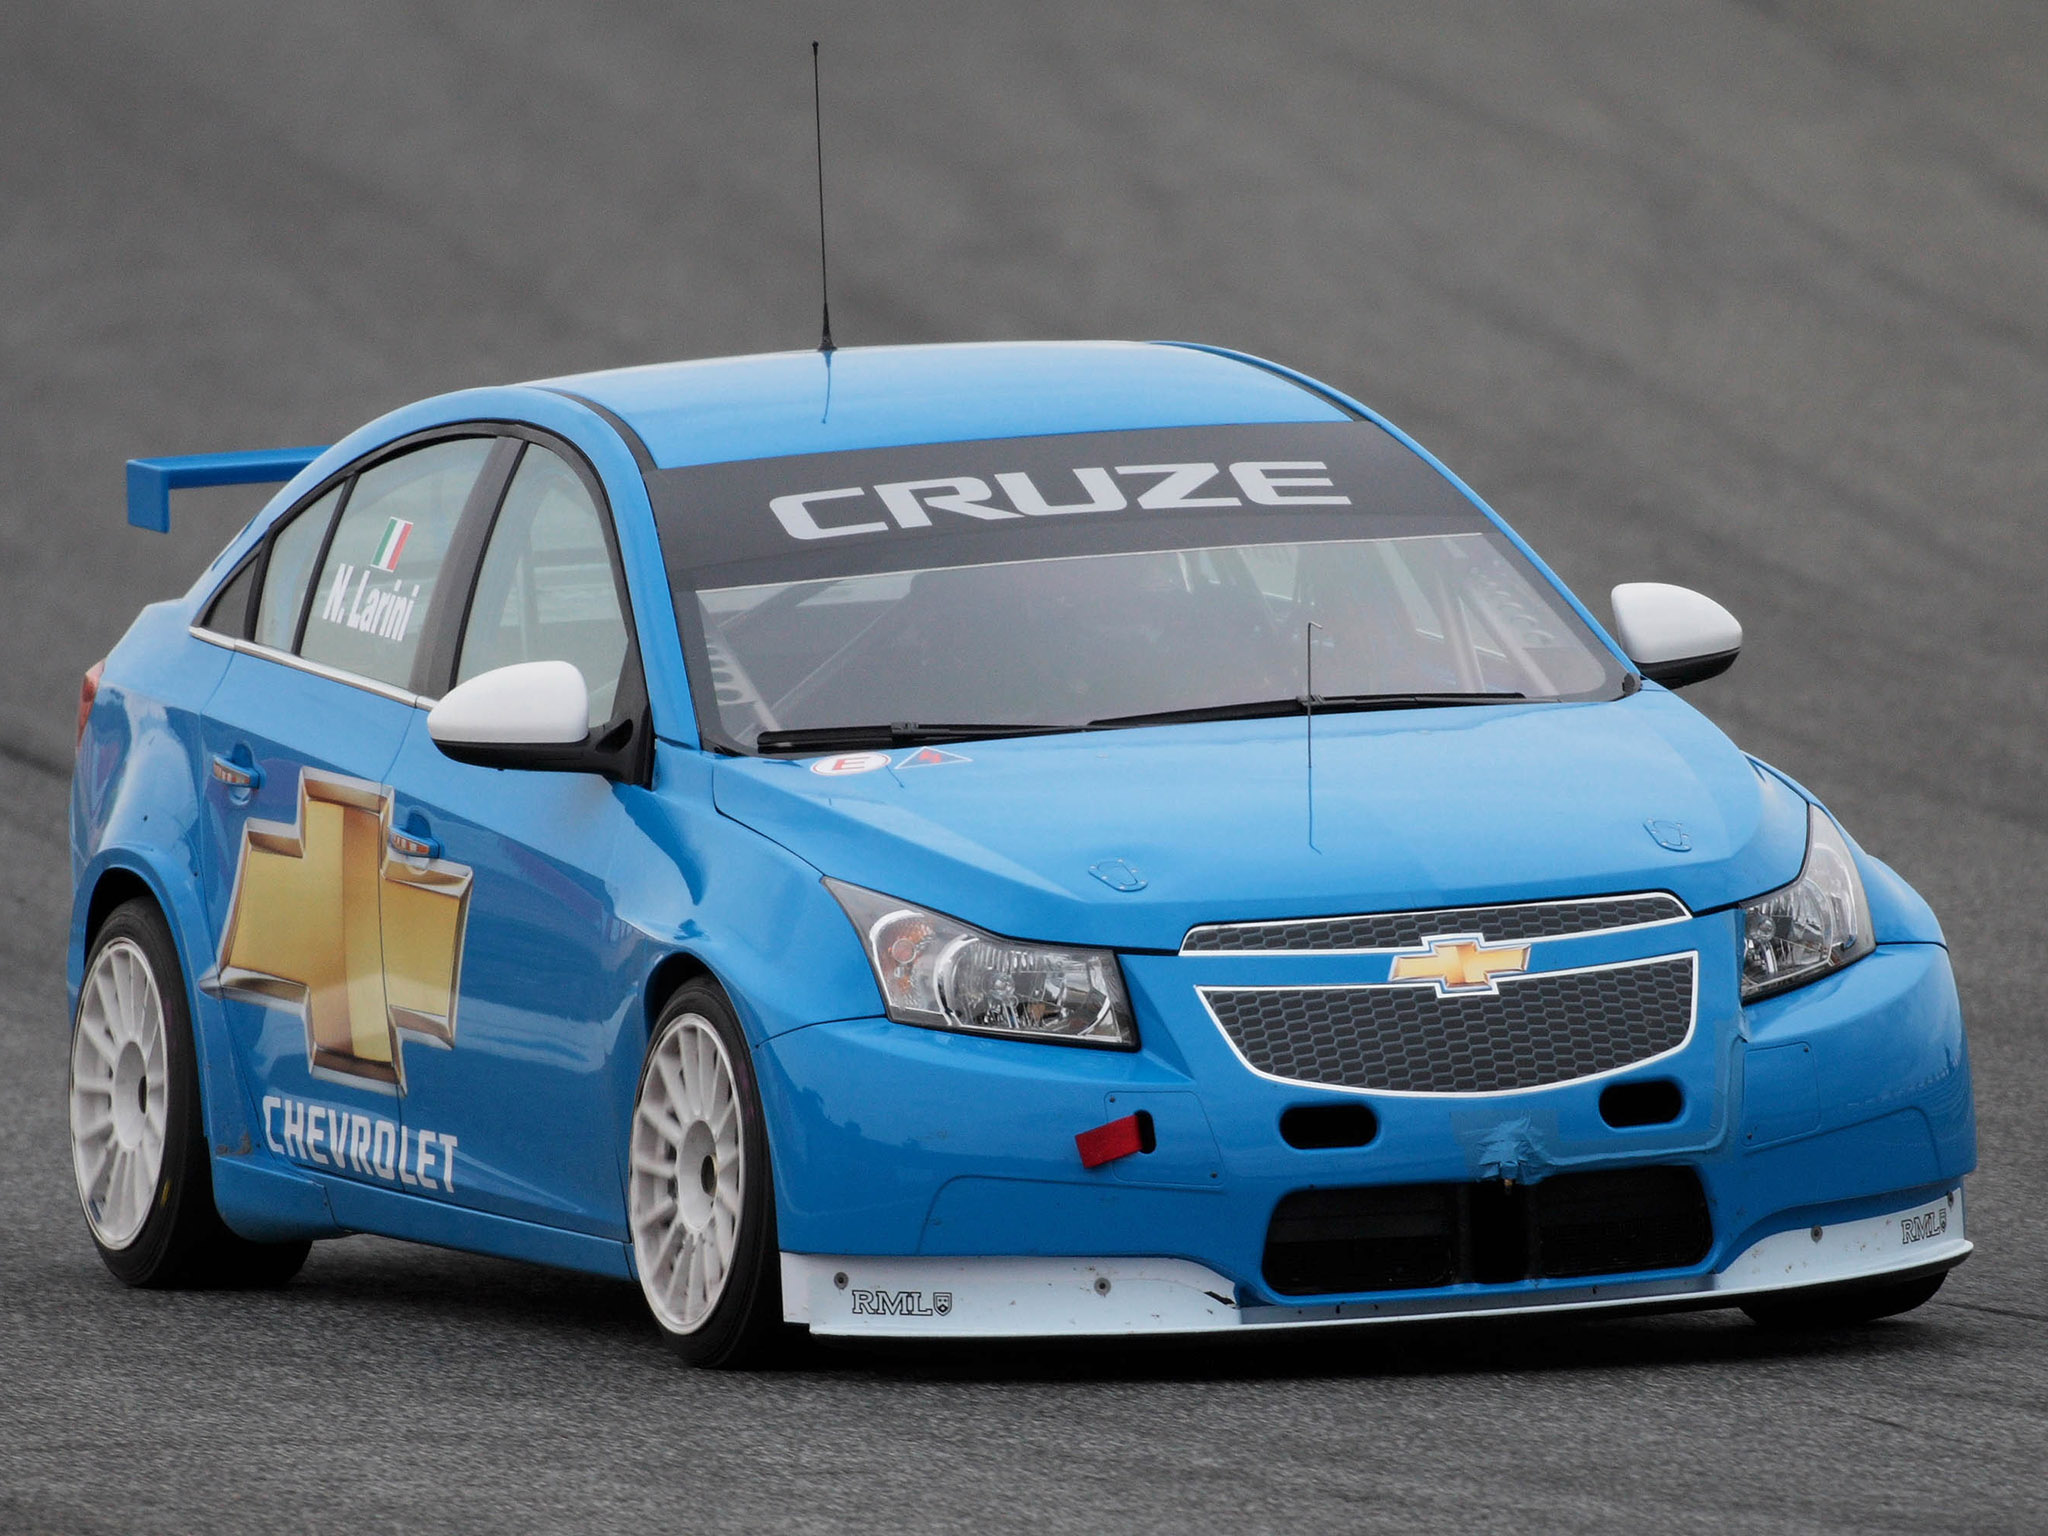 2011 chevrolet cruze wtcc race racing tuning s wallpaper. Black Bedroom Furniture Sets. Home Design Ideas